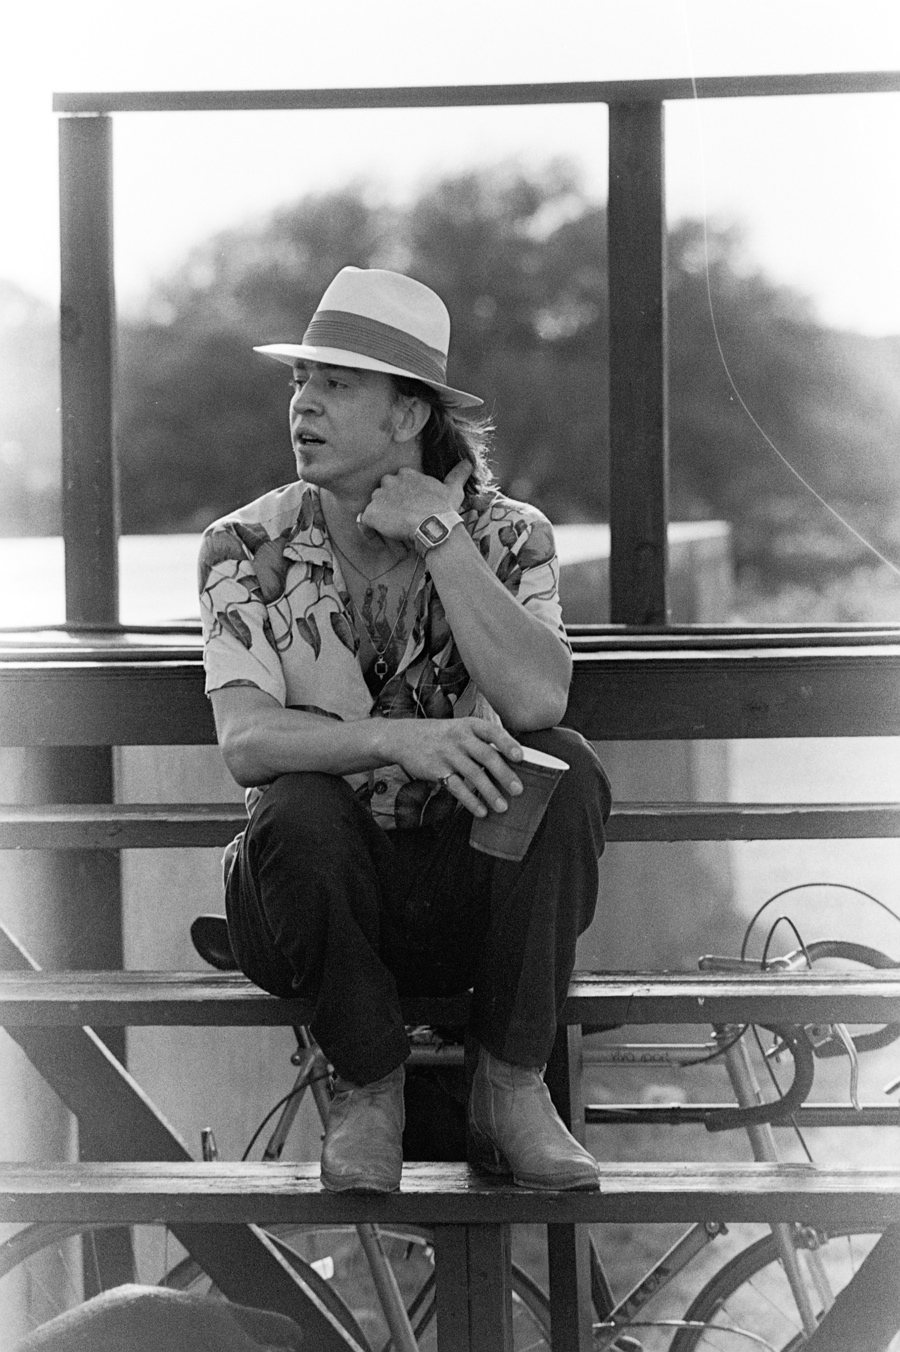 SRV - Auditorium Shores (Austin, TX).